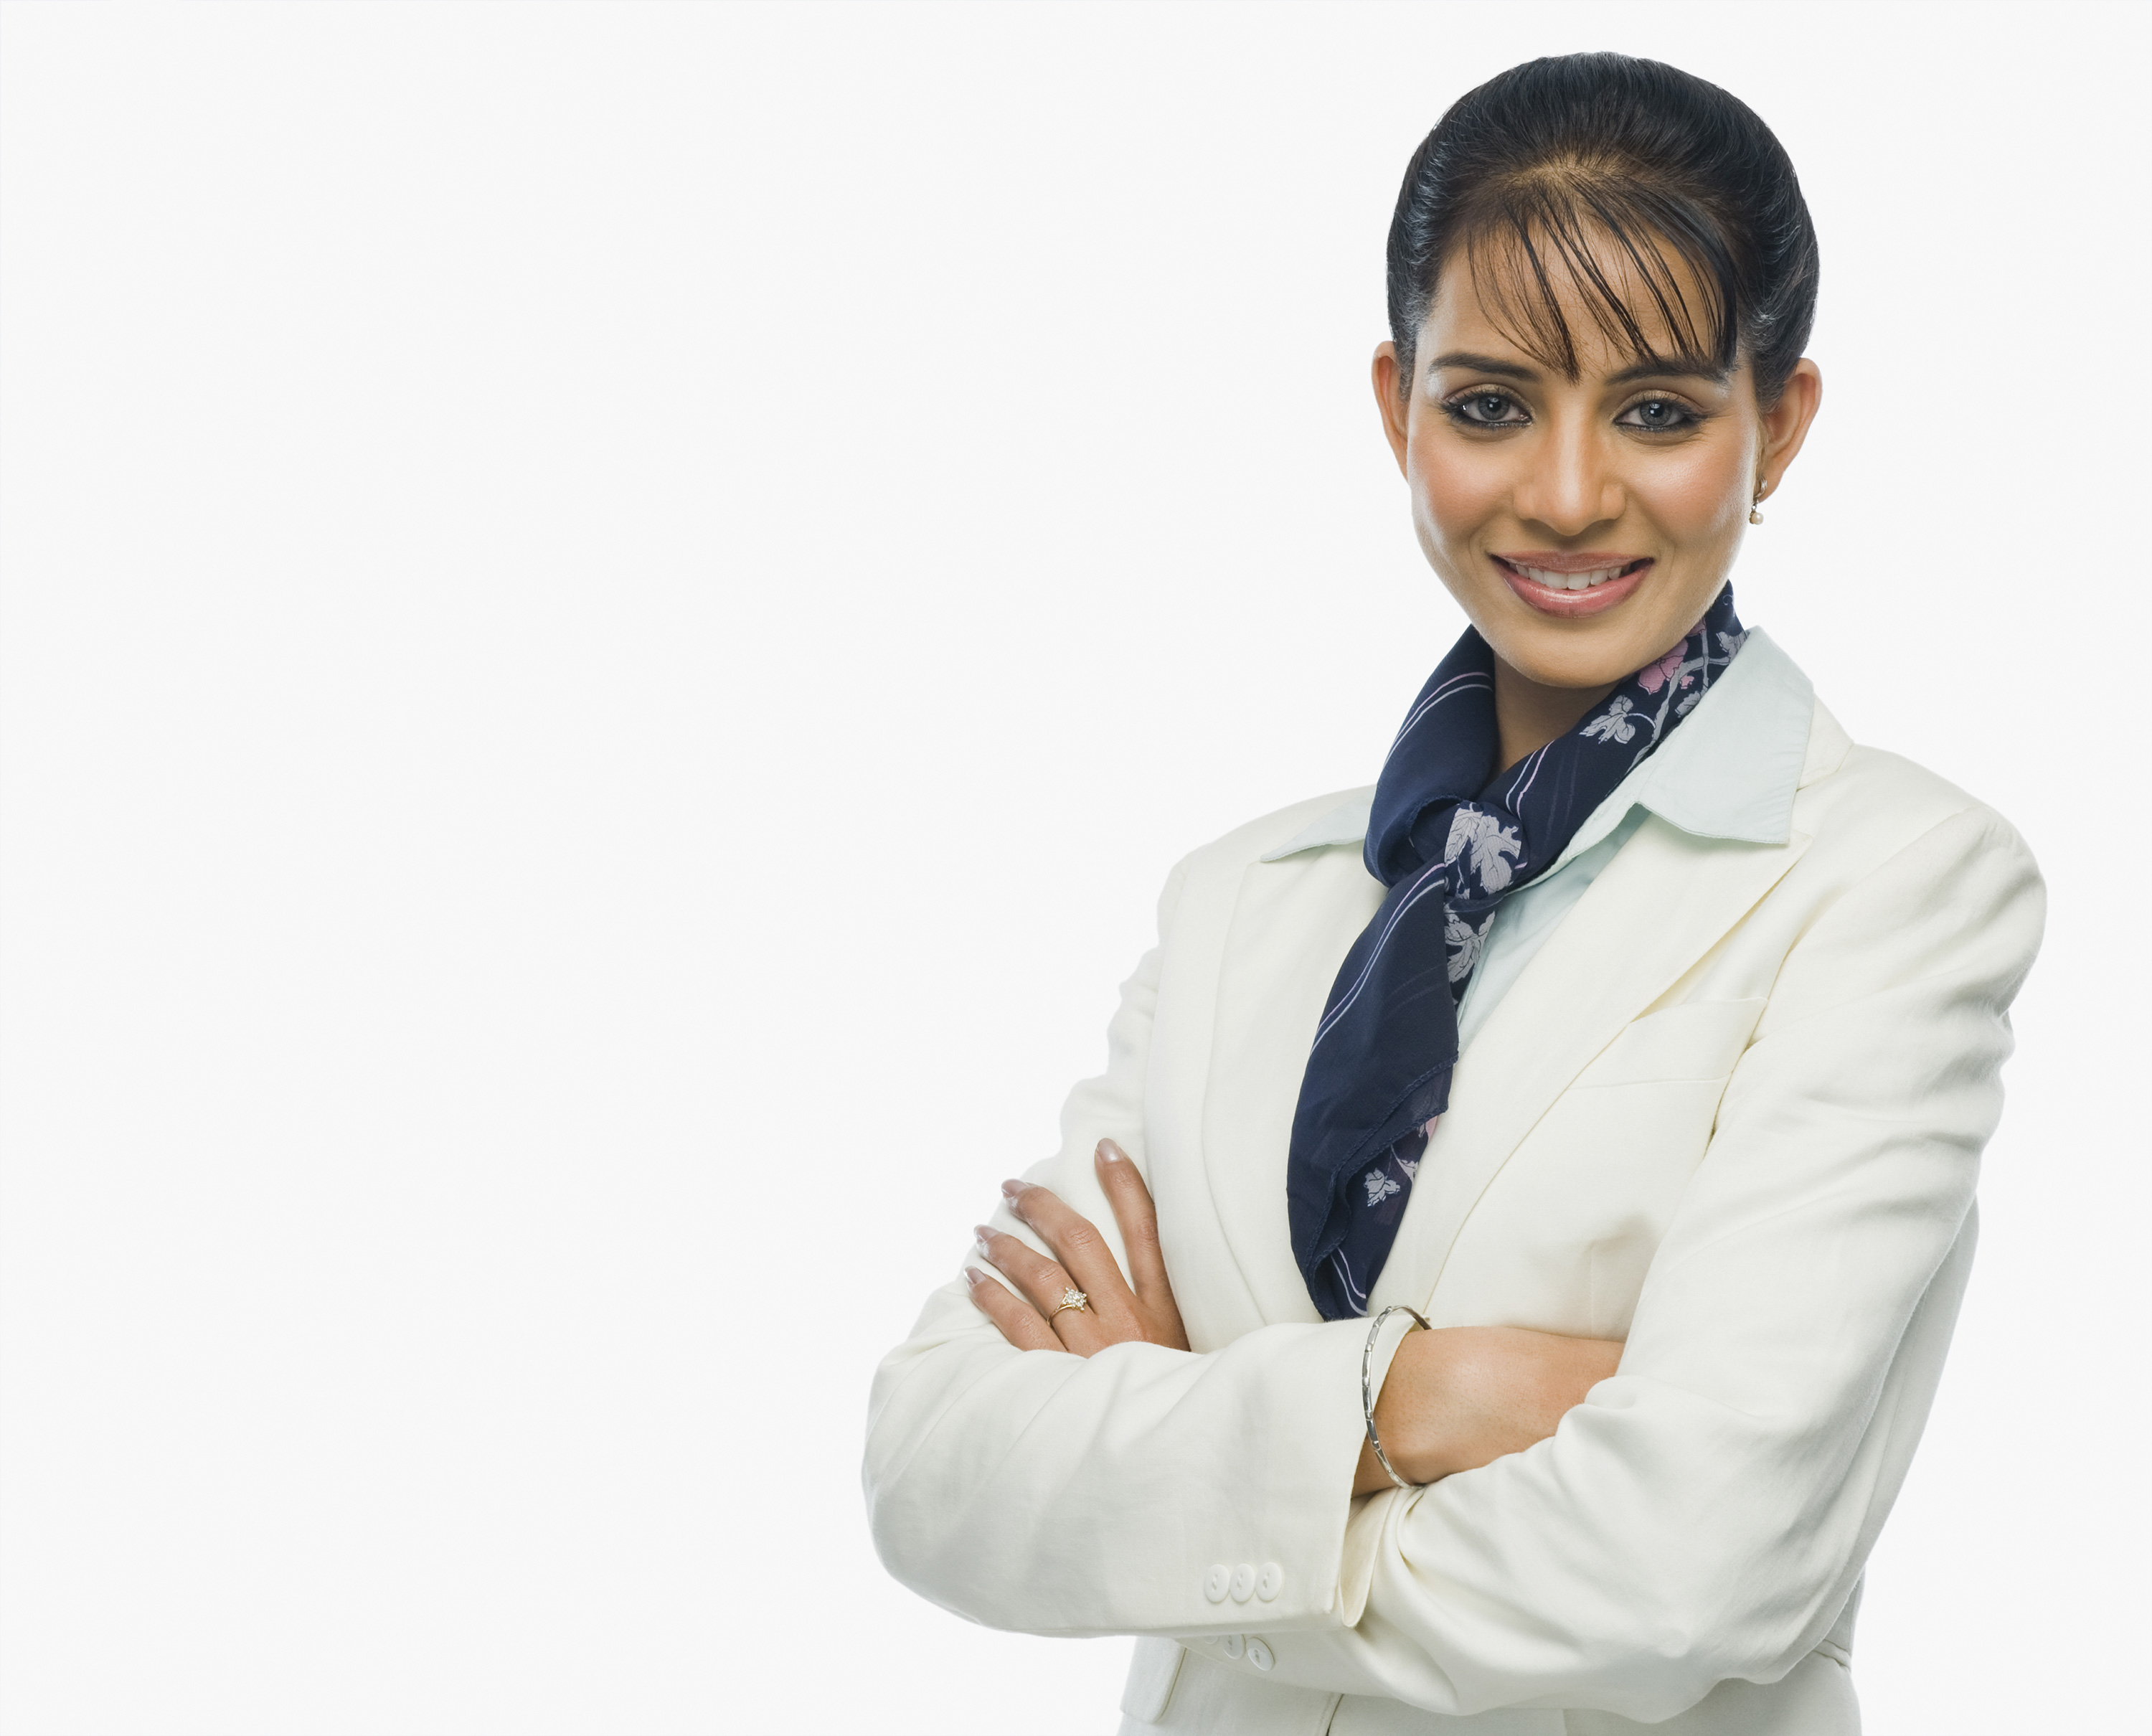 Tips to dress appropriately to work